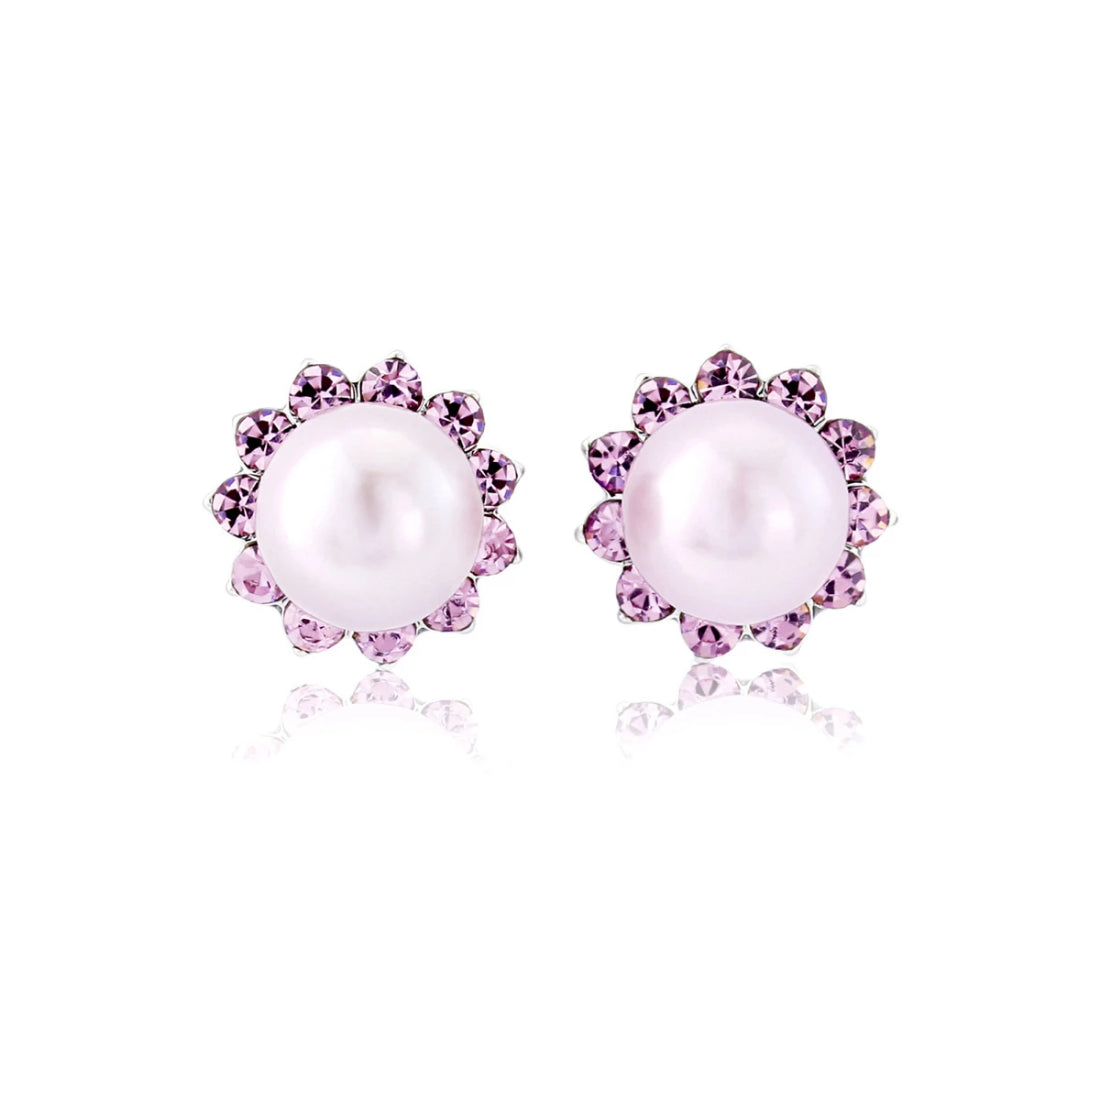 Haze of Amethyst Pearl Stud Earrings